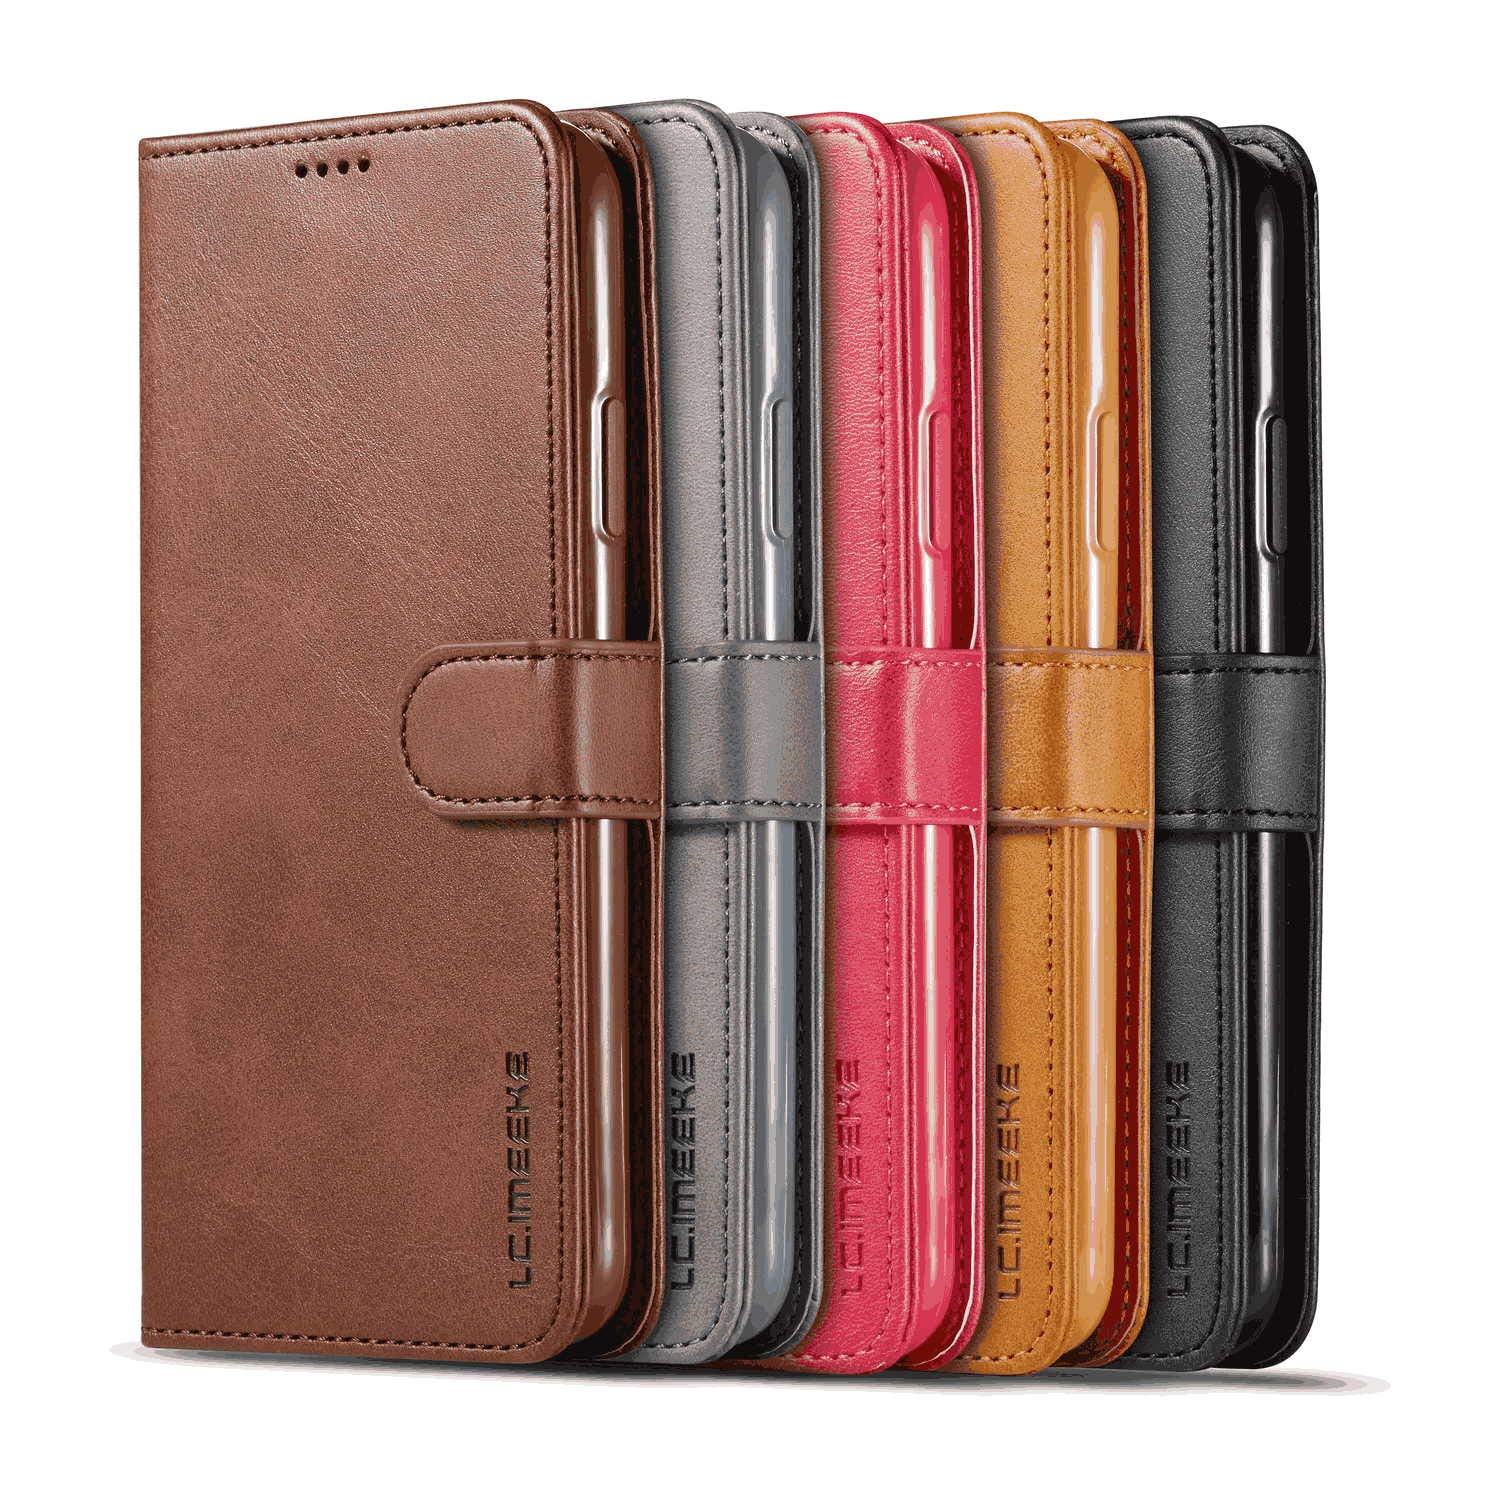 Leather Flip Case Fit for iPhone 11 Pro Max Extra-Protective Kickstand Card Holders Wallet Cover for iPhone 11 Pro Max